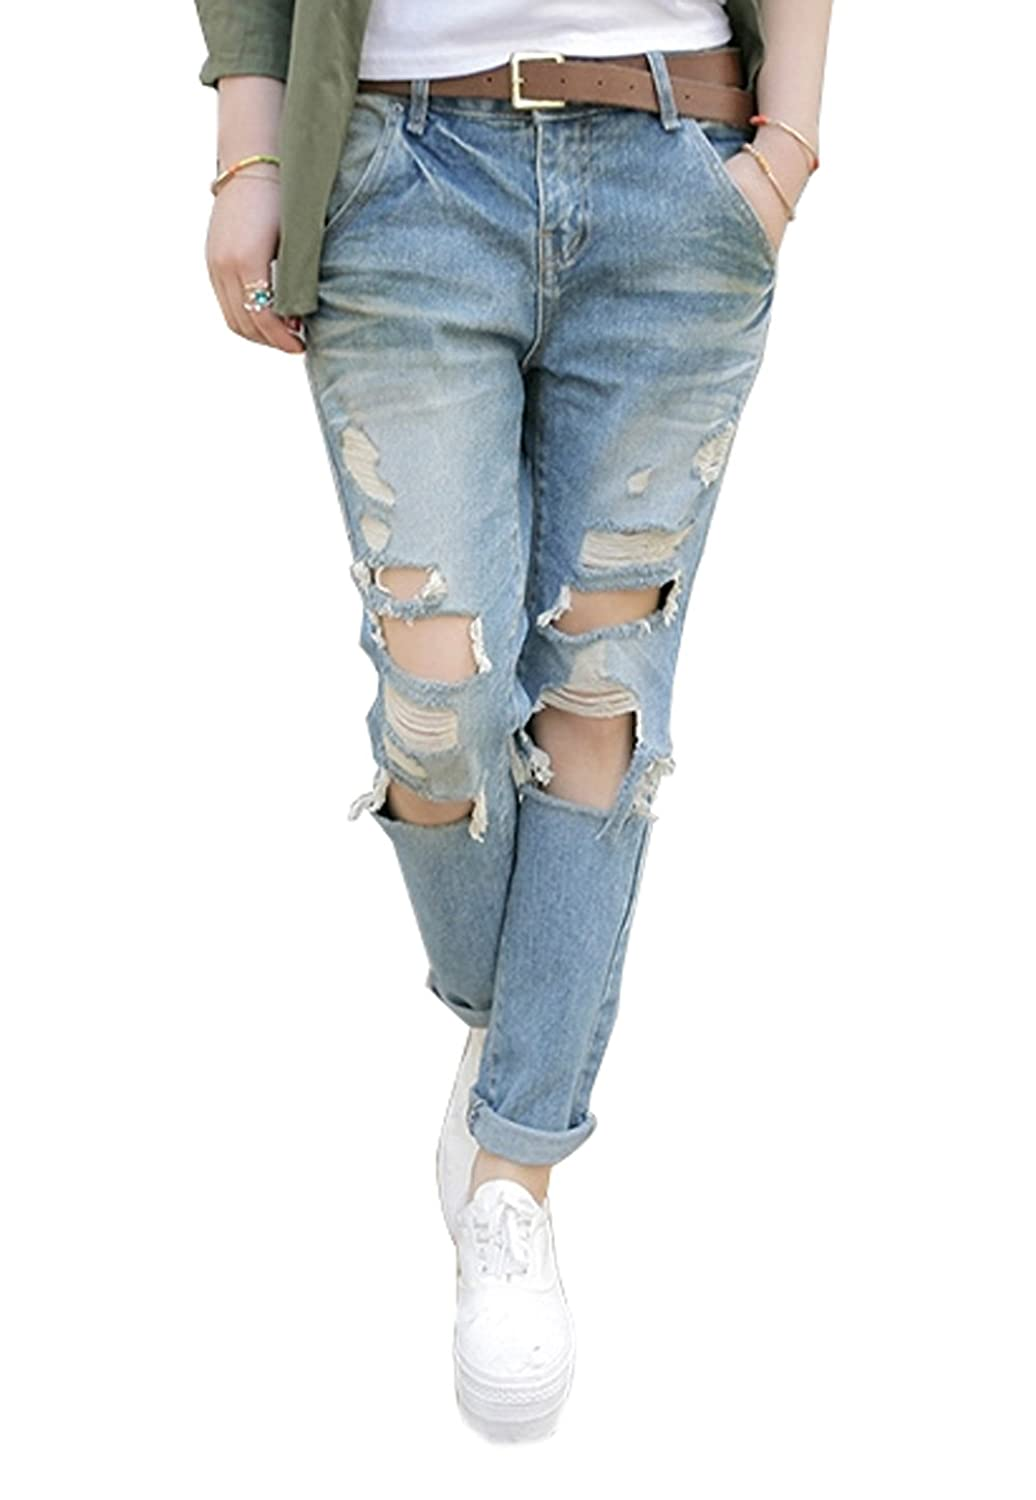 Hole Tide Women's Loose Ripped Holes Opening Denim Crop Jeans 2016 hole jeans free shipping woman distressed true denim skinny jean pencil pants trousers ripped jeans for women 031